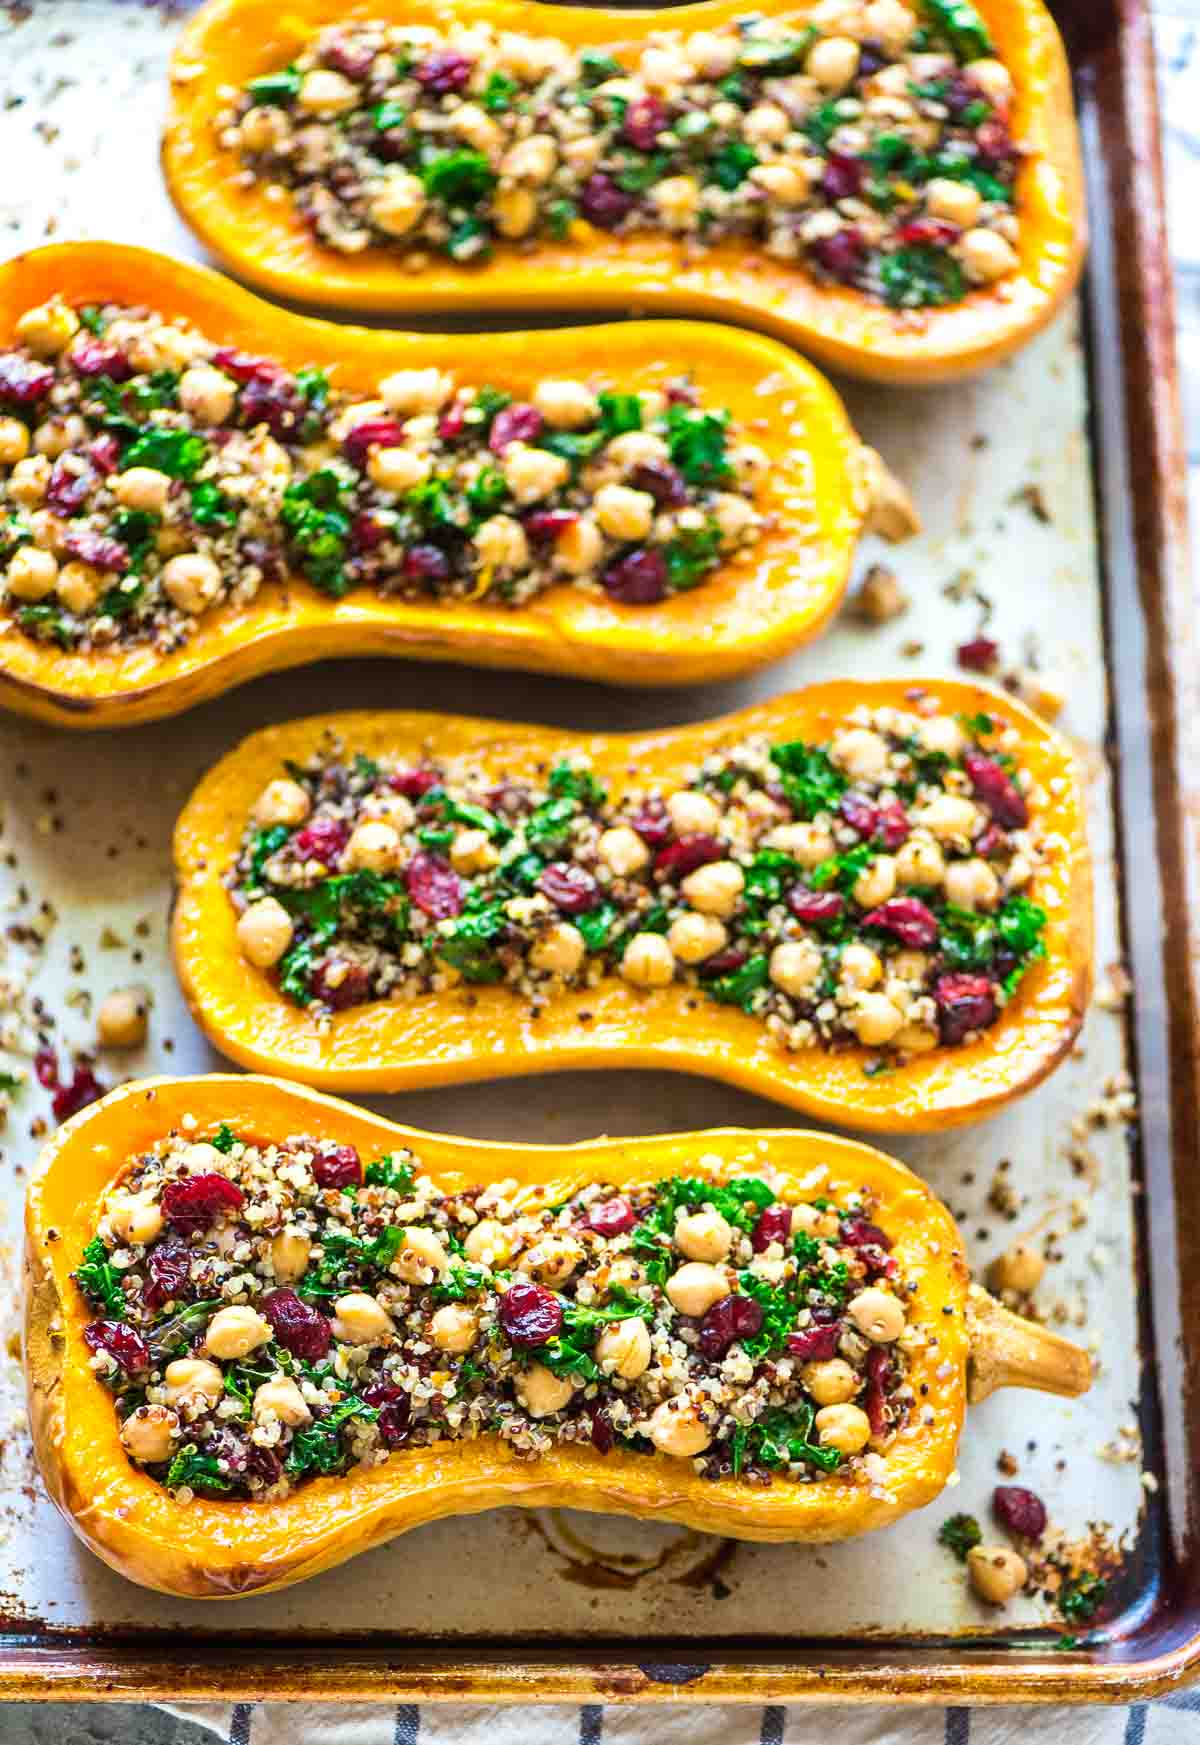 Stuffed Butternut Squash with Quinoa Cranberries and Kale